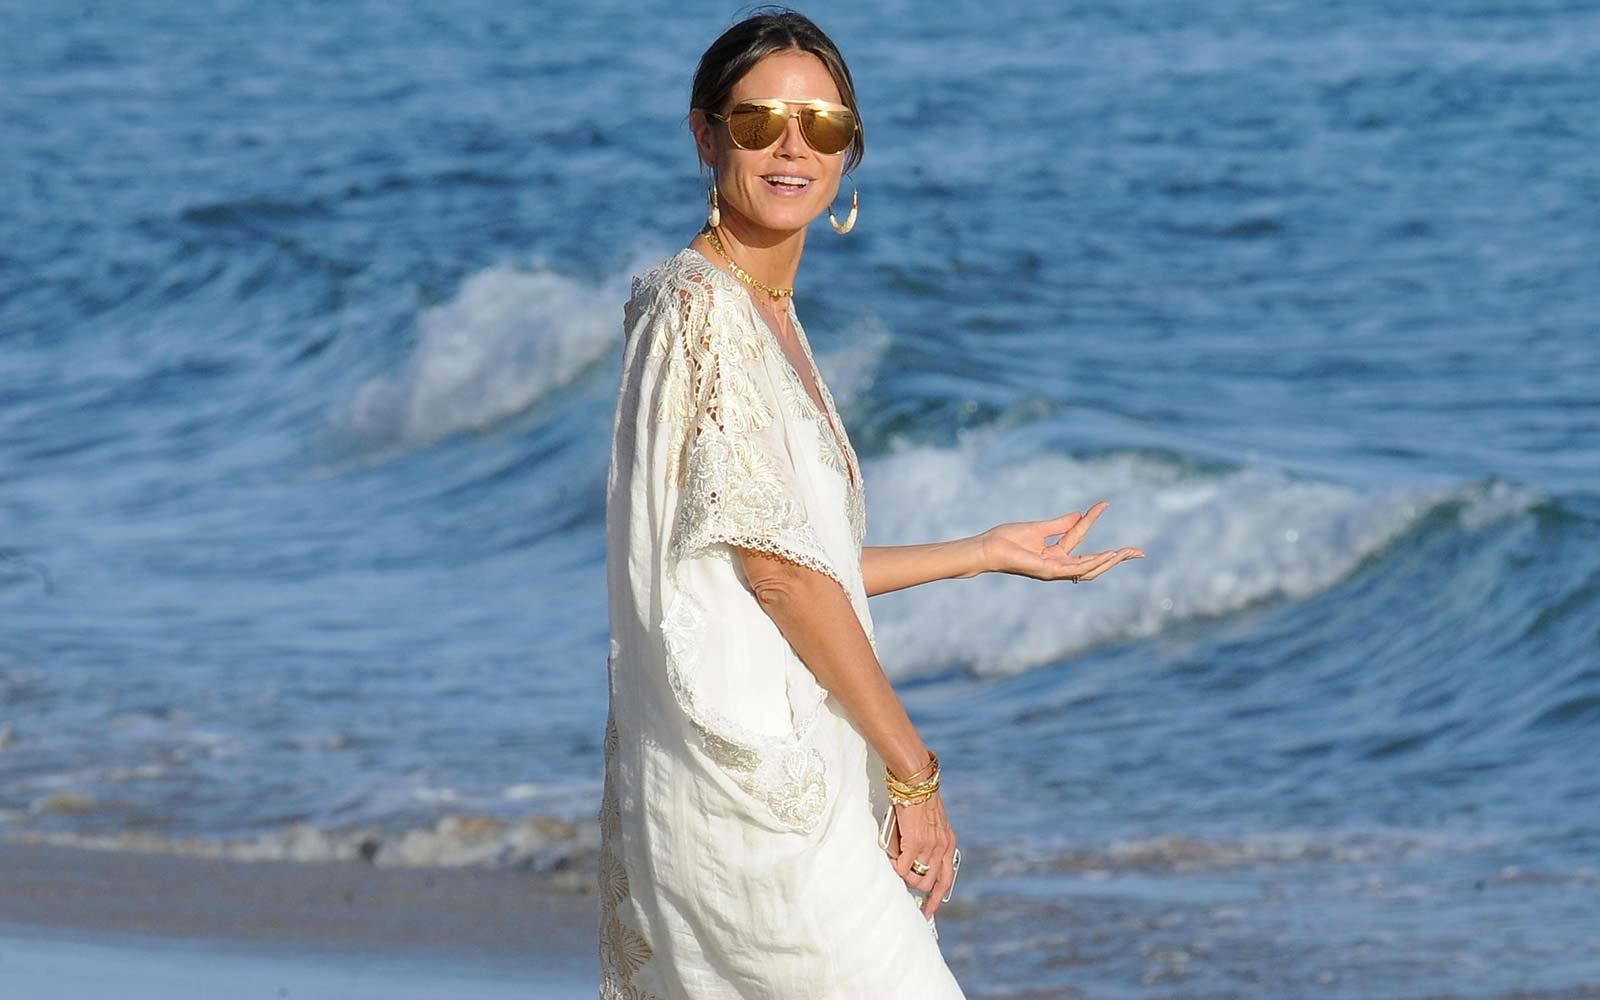 heidi klum model celebrity beach tropical vacation holiday caribbean